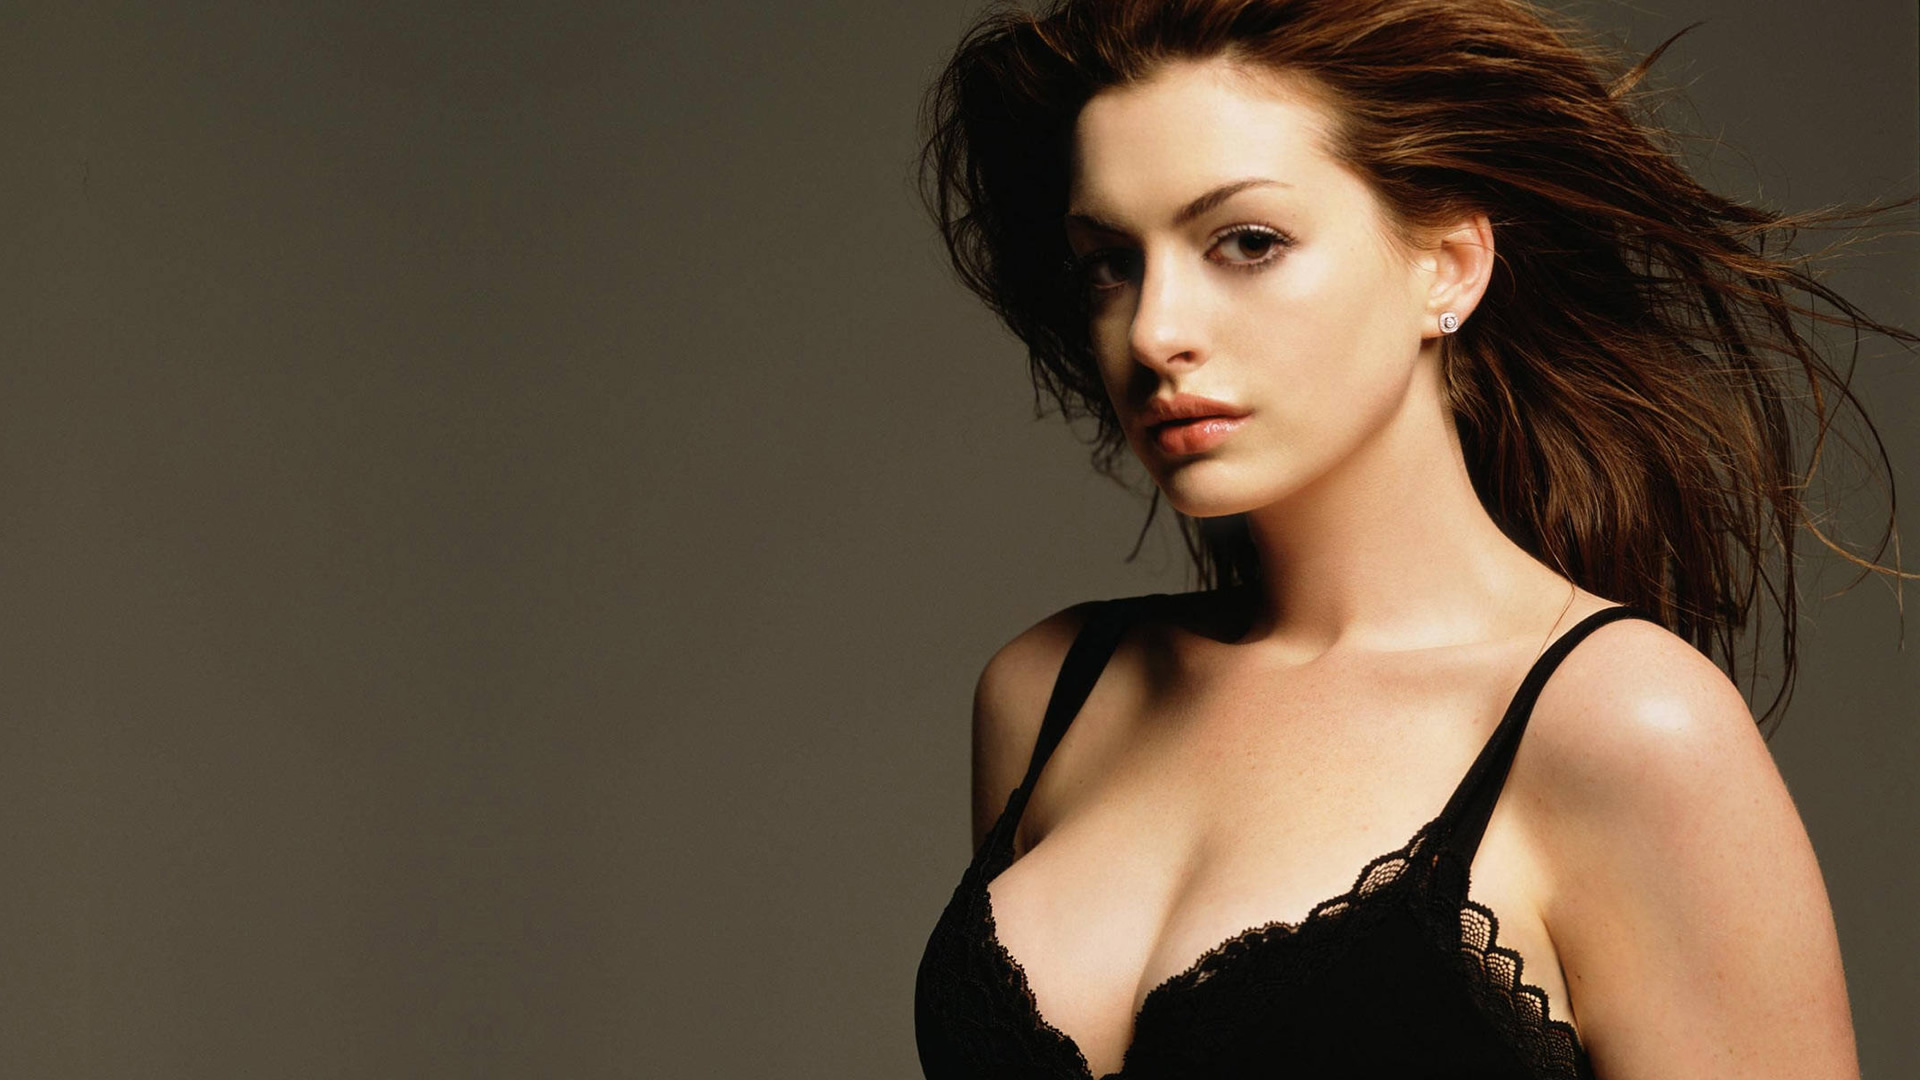 Anne Hathaway Wallpapers High Resolution And Quality Download